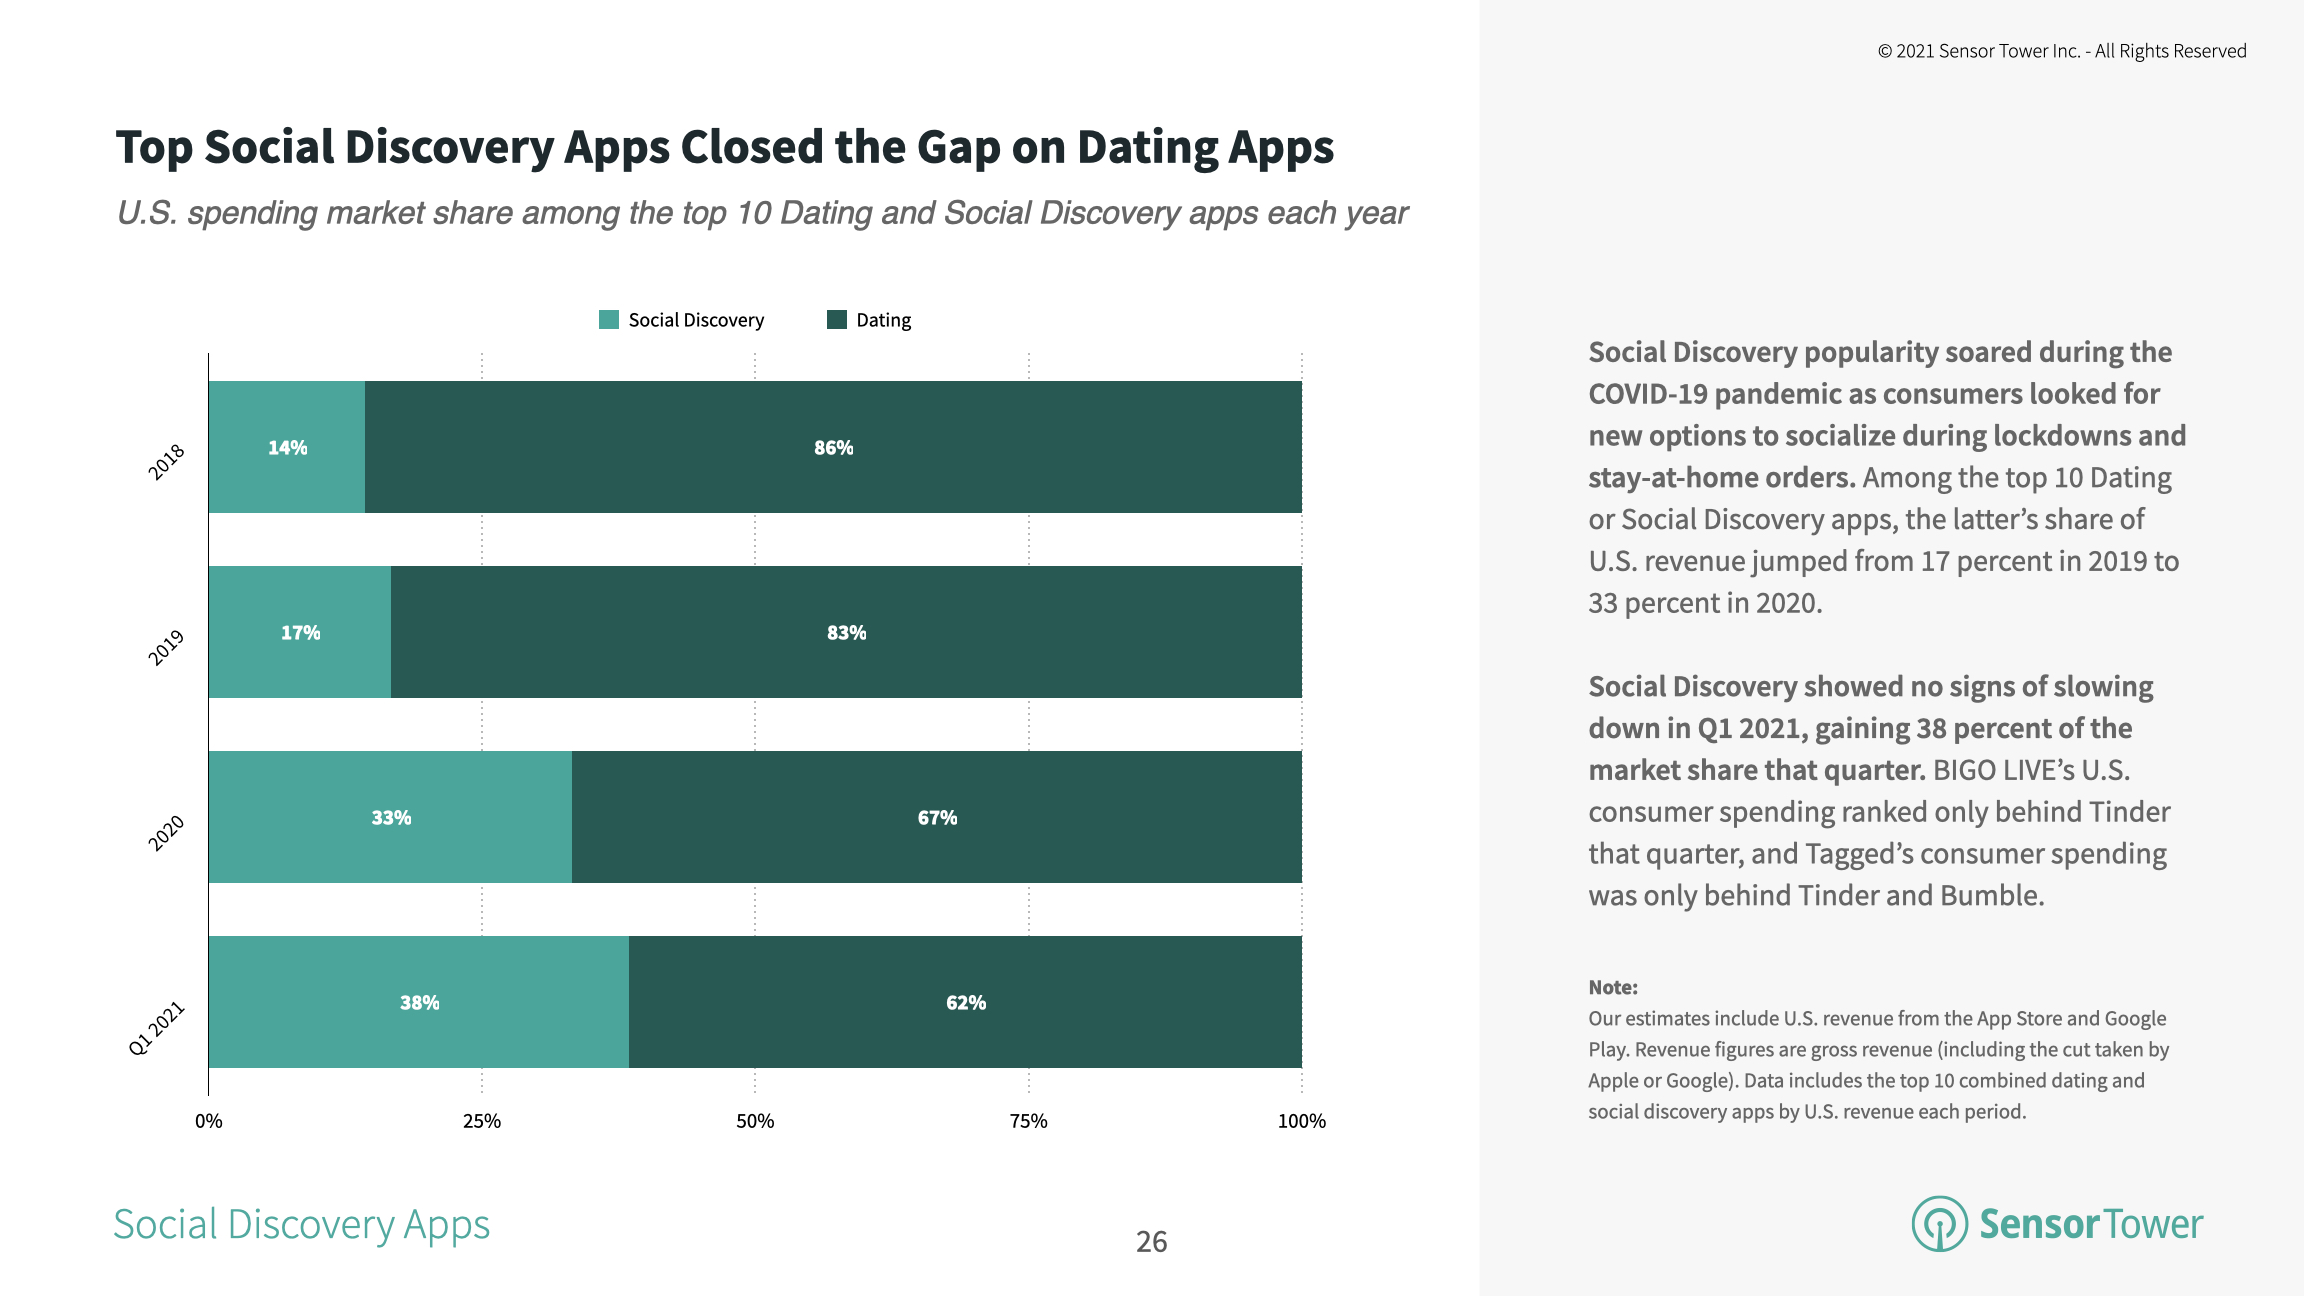 Social Discovery increases the US consumer spending market share to 38% in 1Q21.